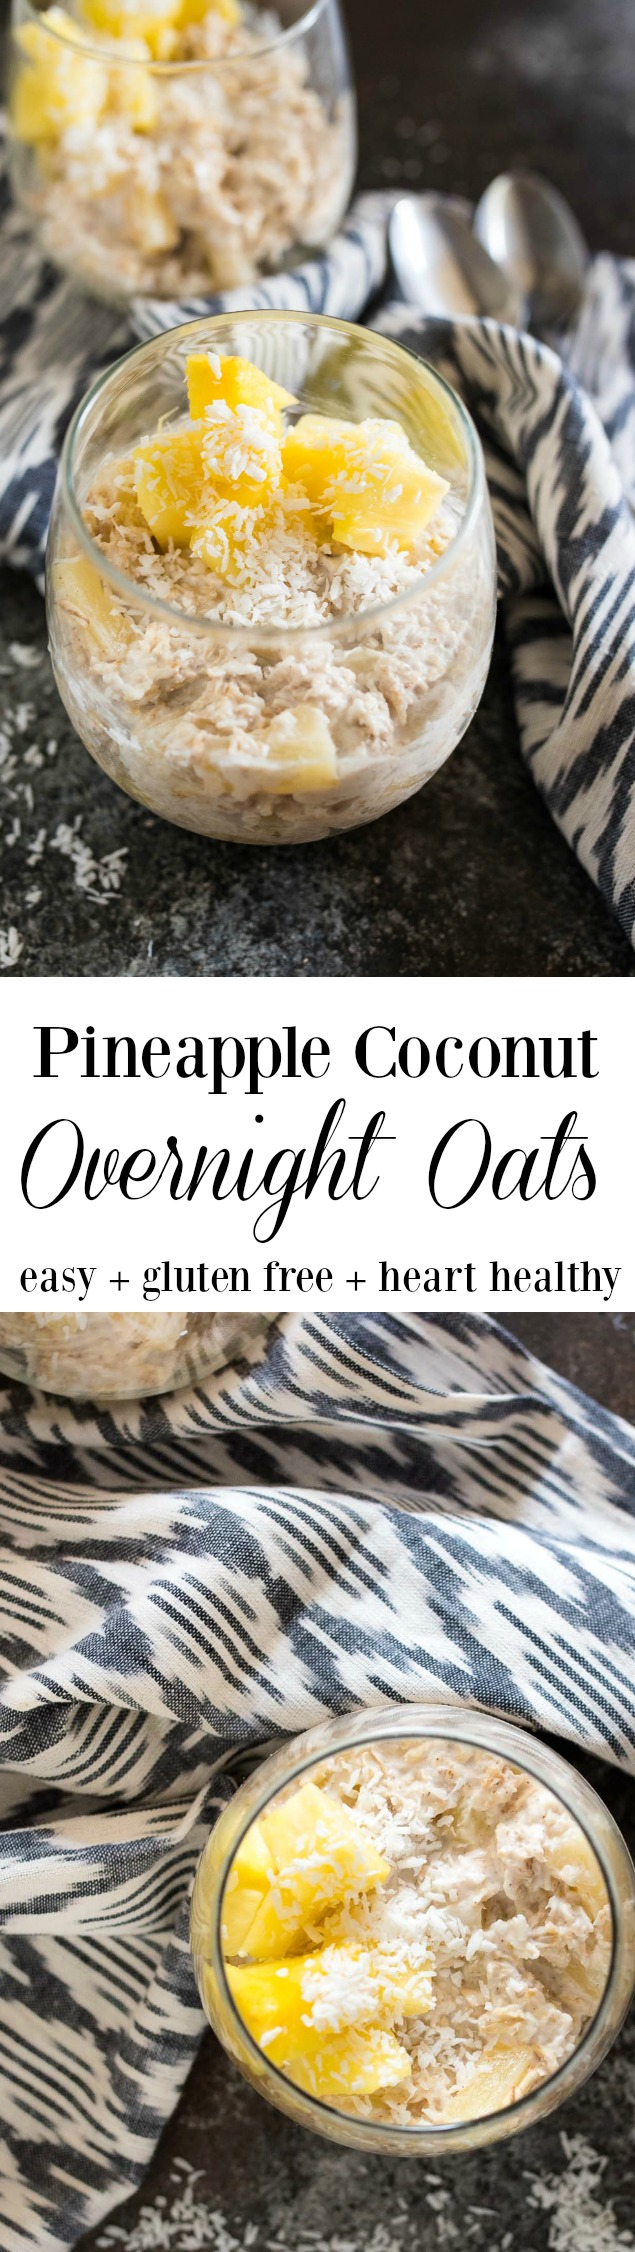 Pineapple Coconut Overnight Oats- easy, make-ahead, heart-healthy breakfast that will provide you with whole grain fiber, protein and Vitamin C!